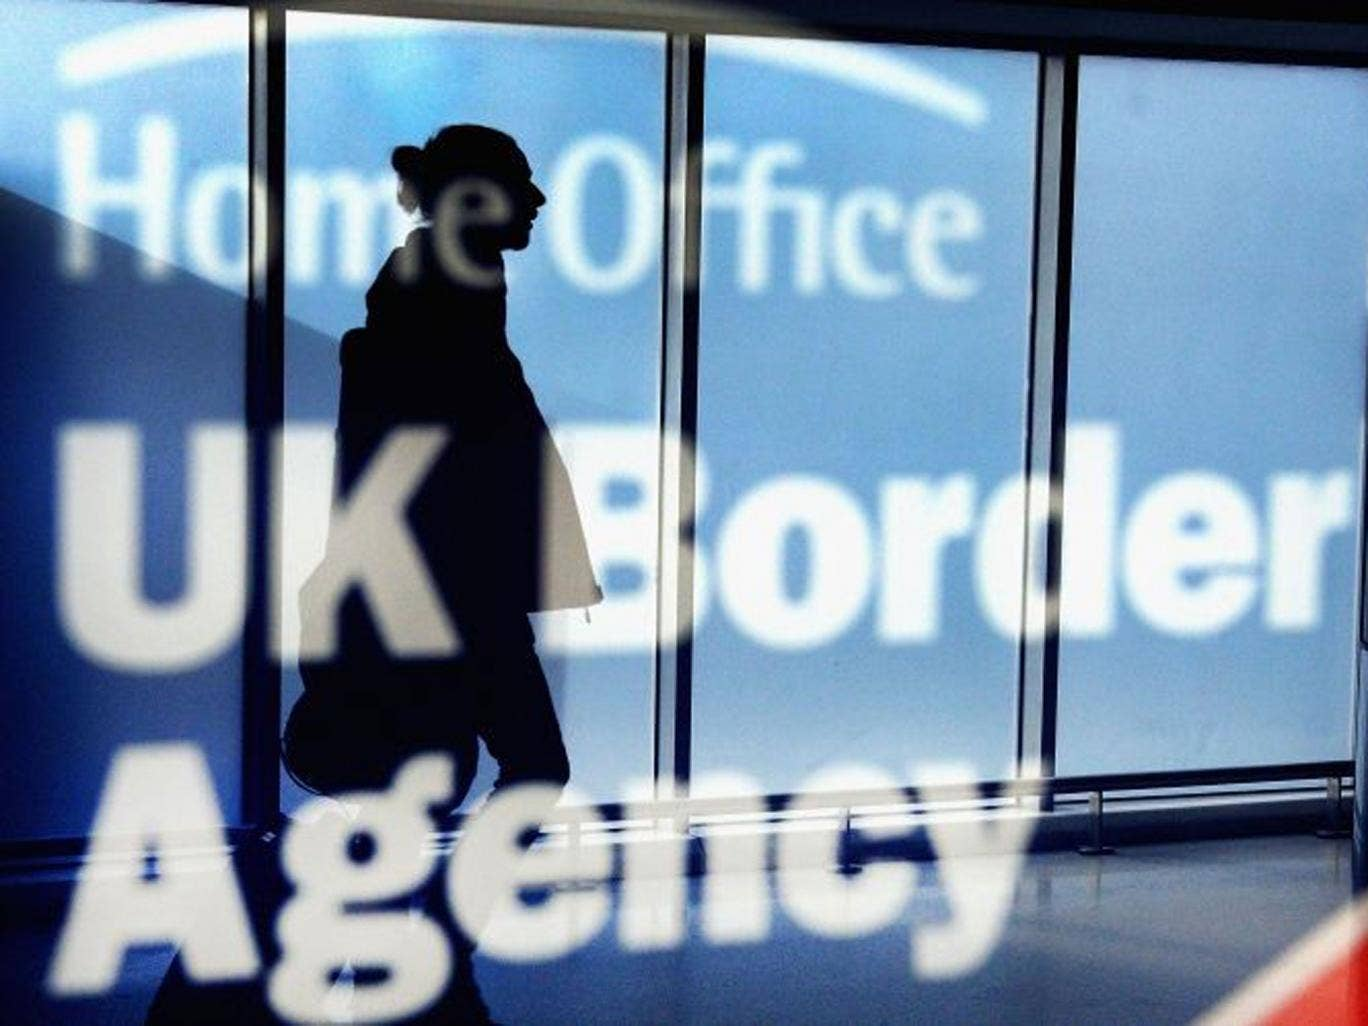 Despite some politicians fears, it appears there has been no great influx into the UK